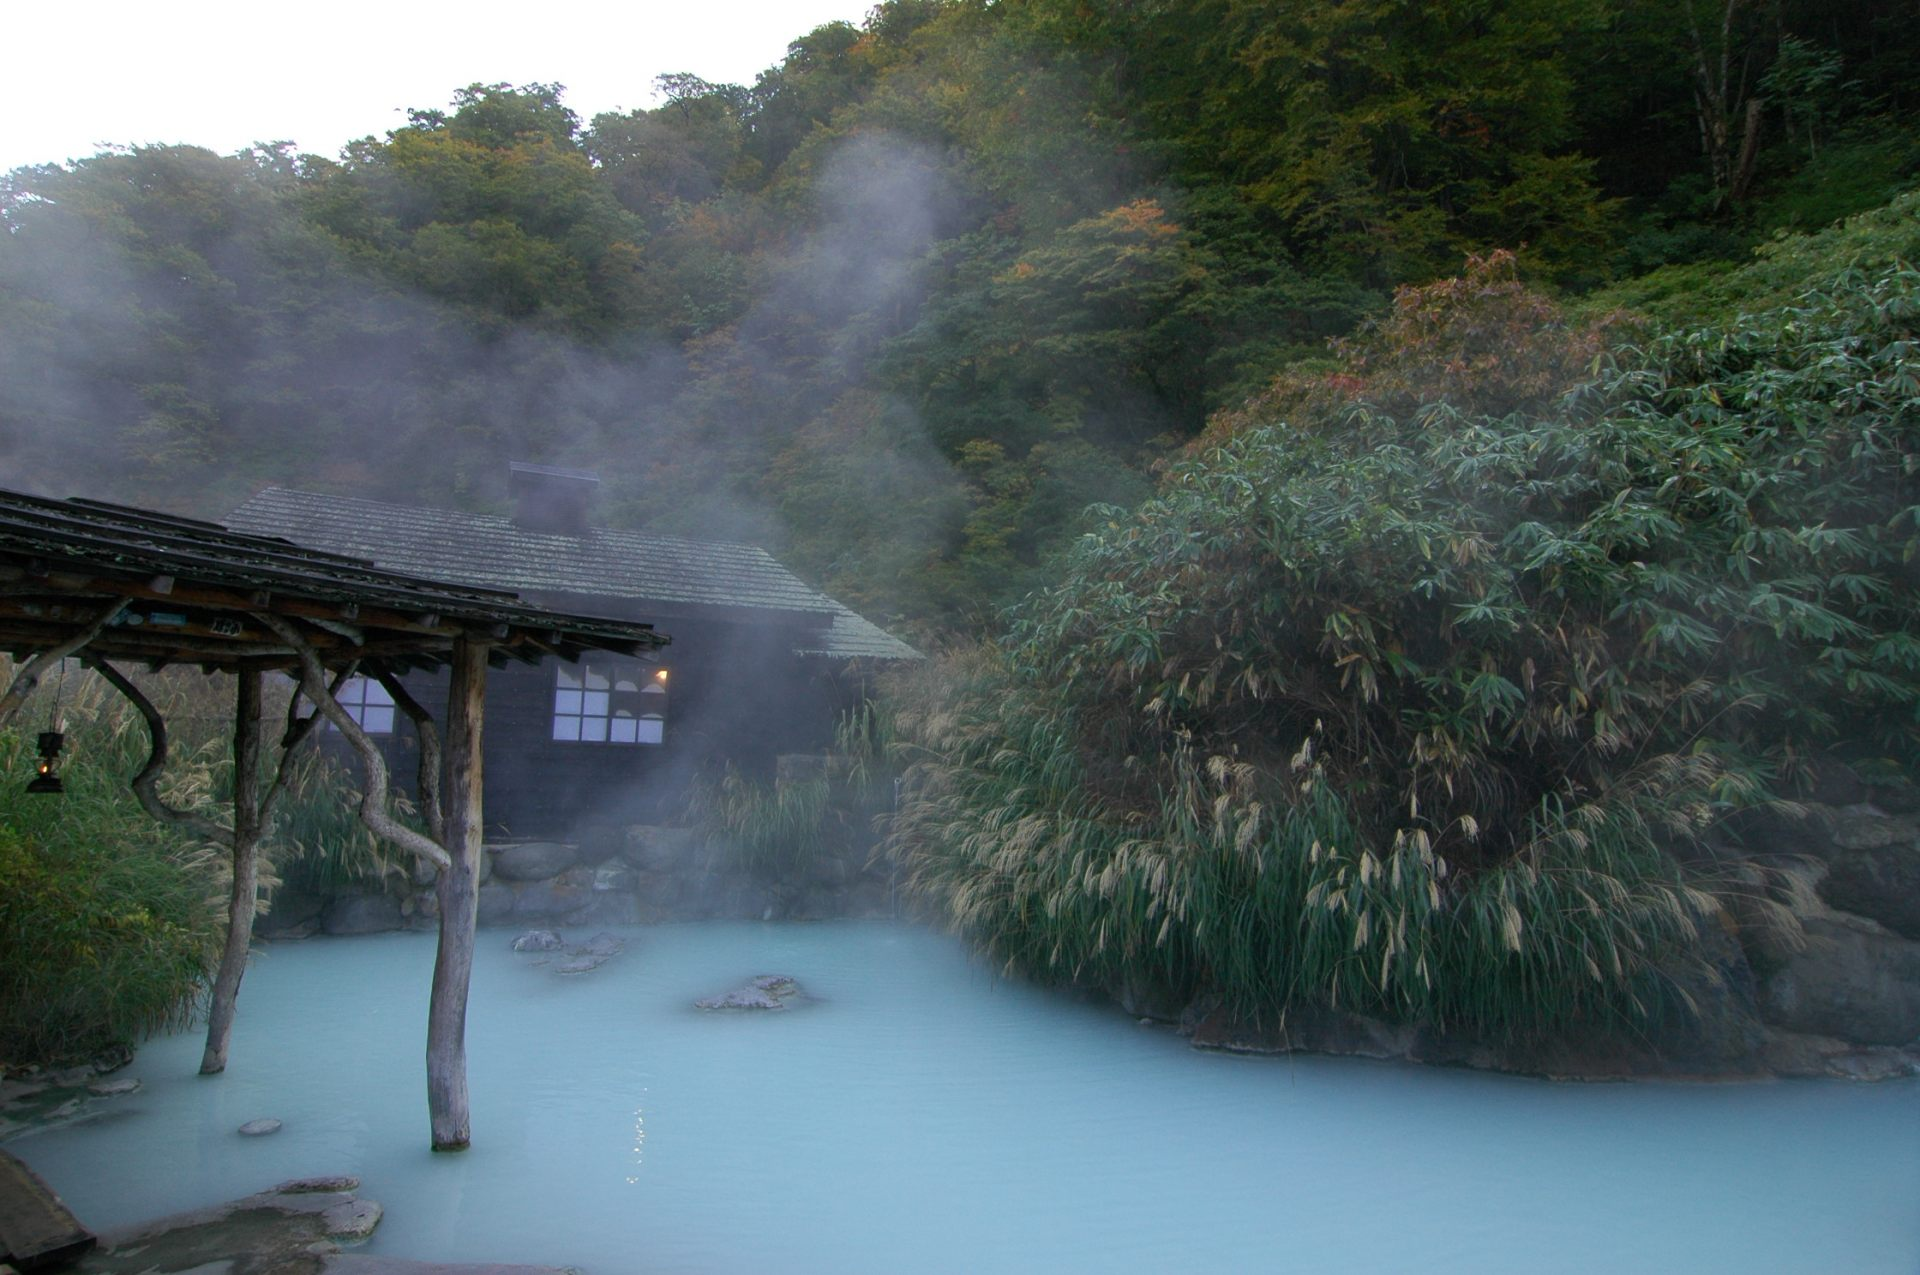 Tsurunoyu Onsen's open-air bath for mixed bathing. The milky hot spa water comes up from the bath floor.